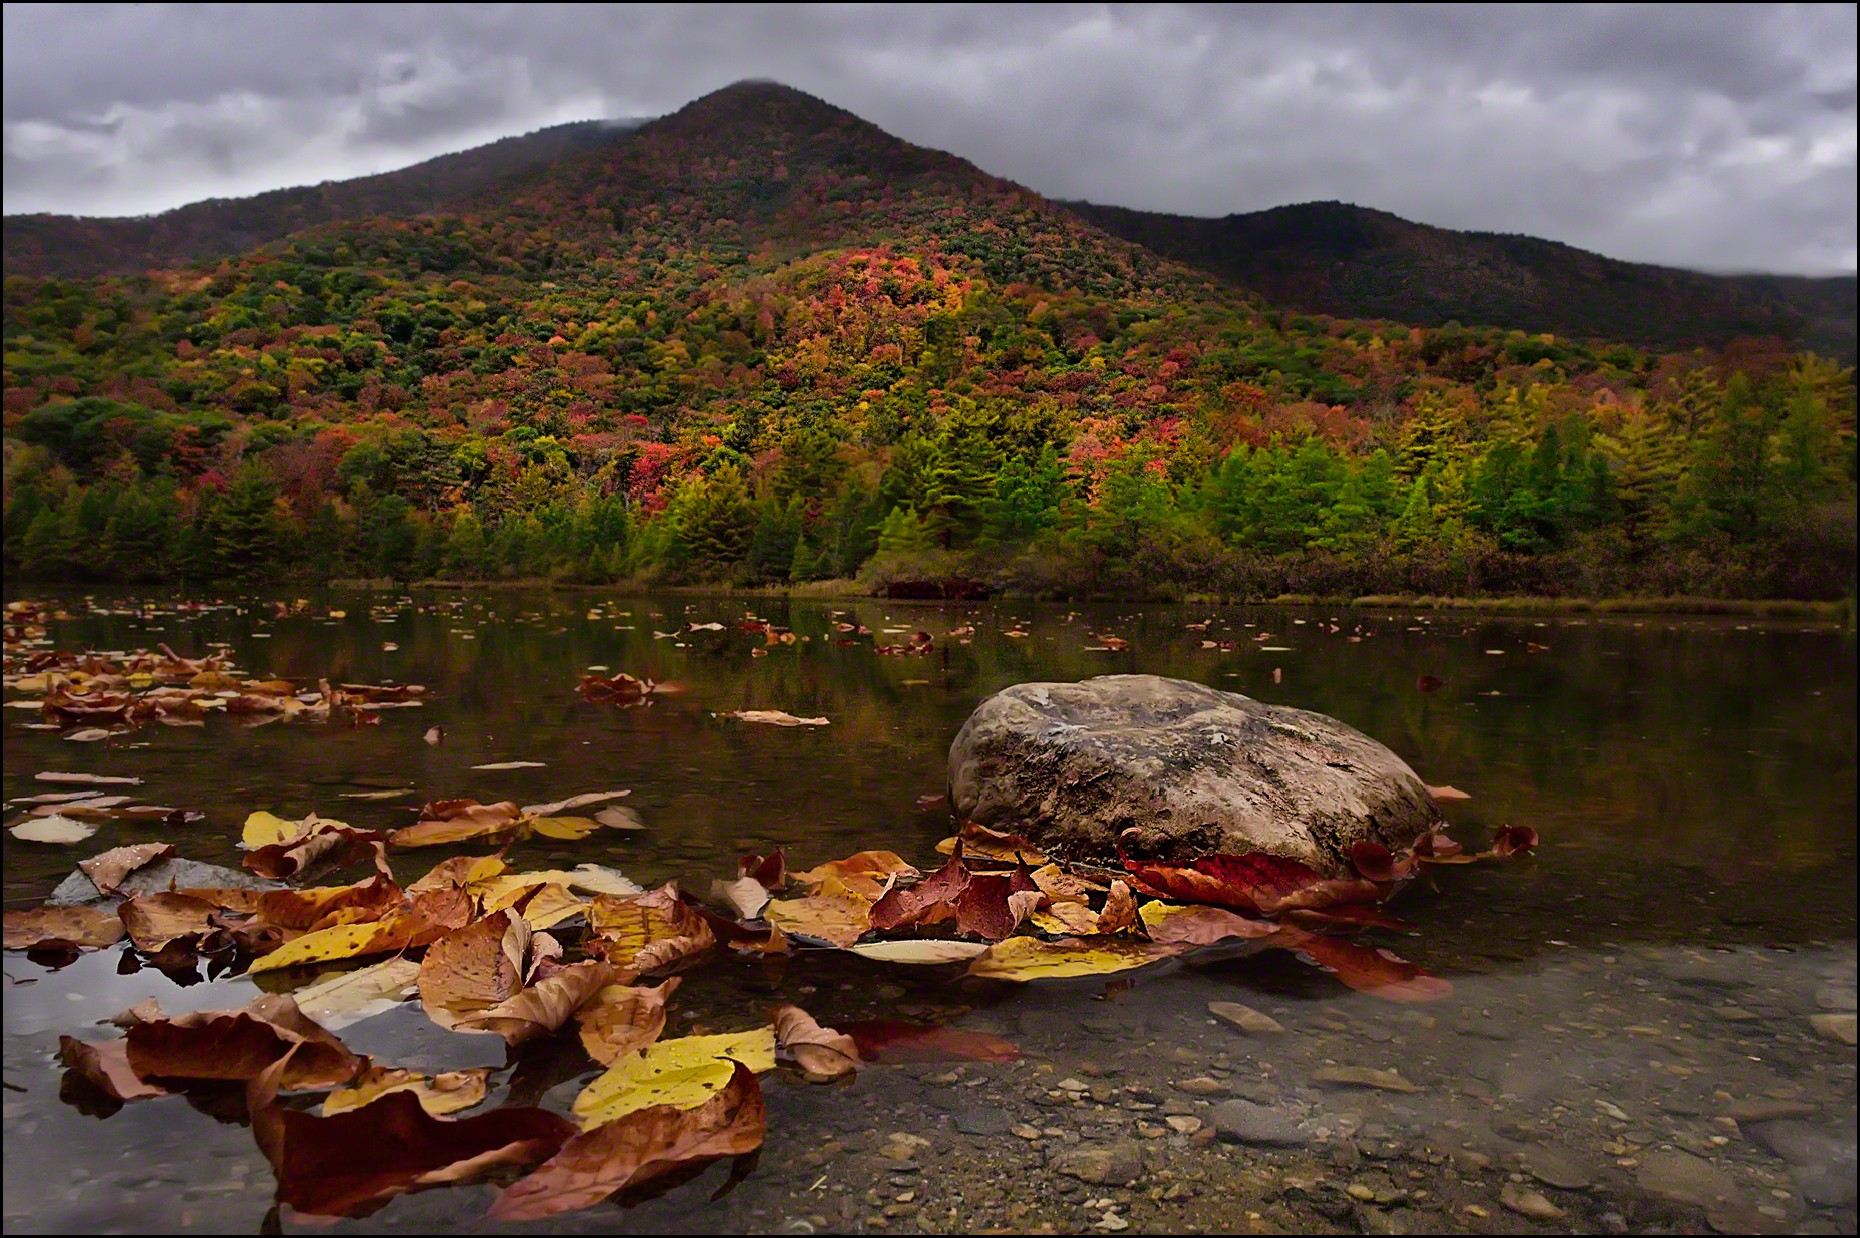 FritzImages | Travel and Outdoor Digital Images | image name = FIFP 20141004 0005 VT Equinox Pond OPT